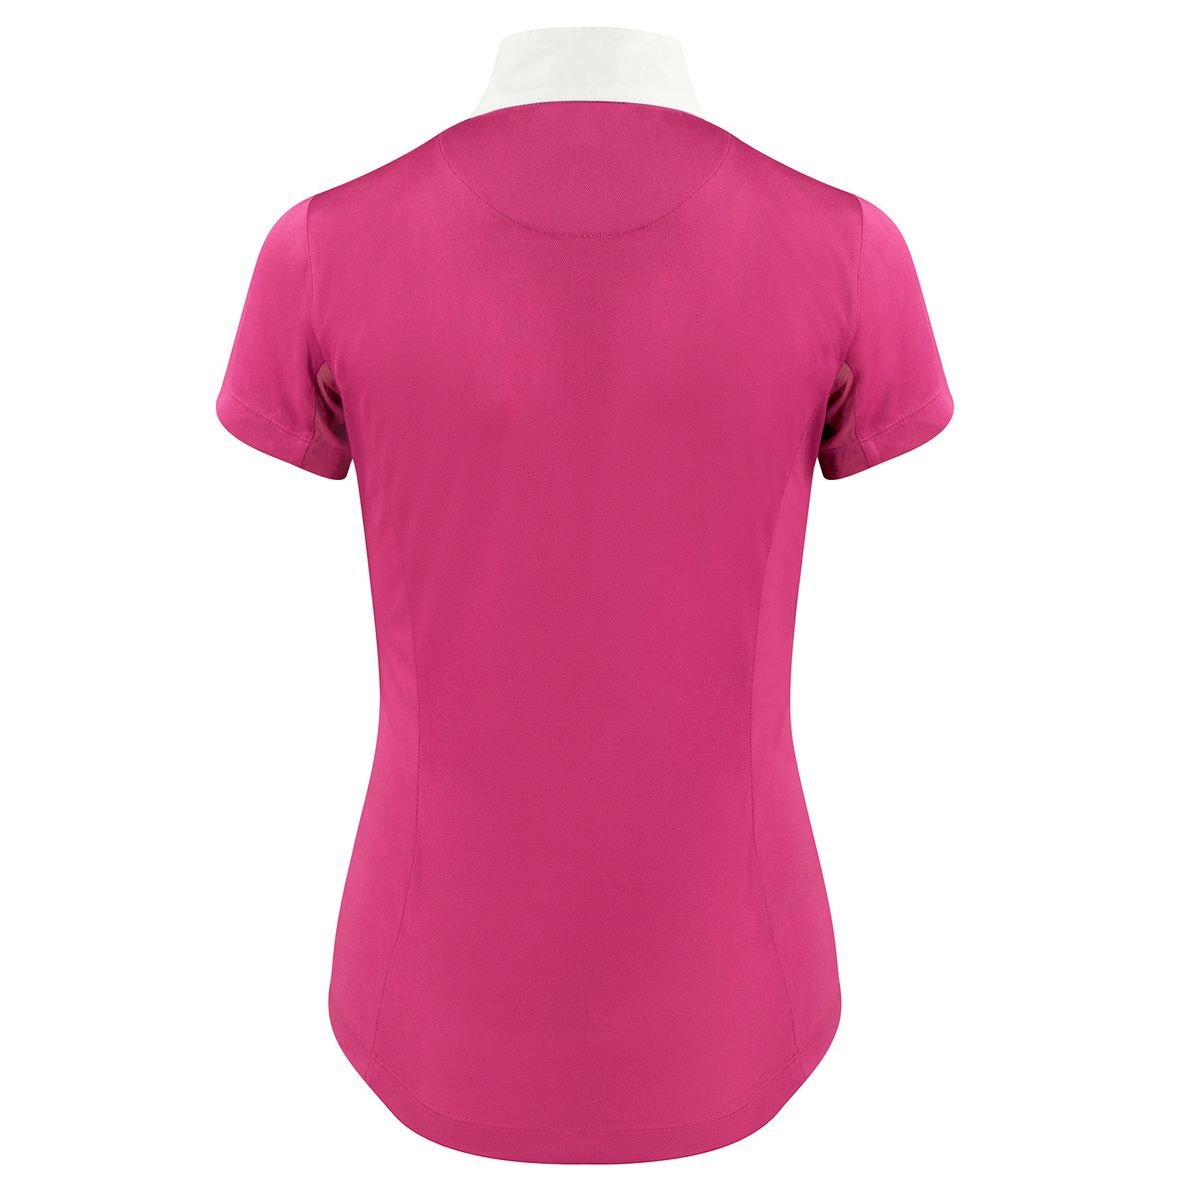 Horze-Blaire-Women-039-s-Short-Sleeve-Functional-Show-Shirt-with-UV-Protection thumbnail 6